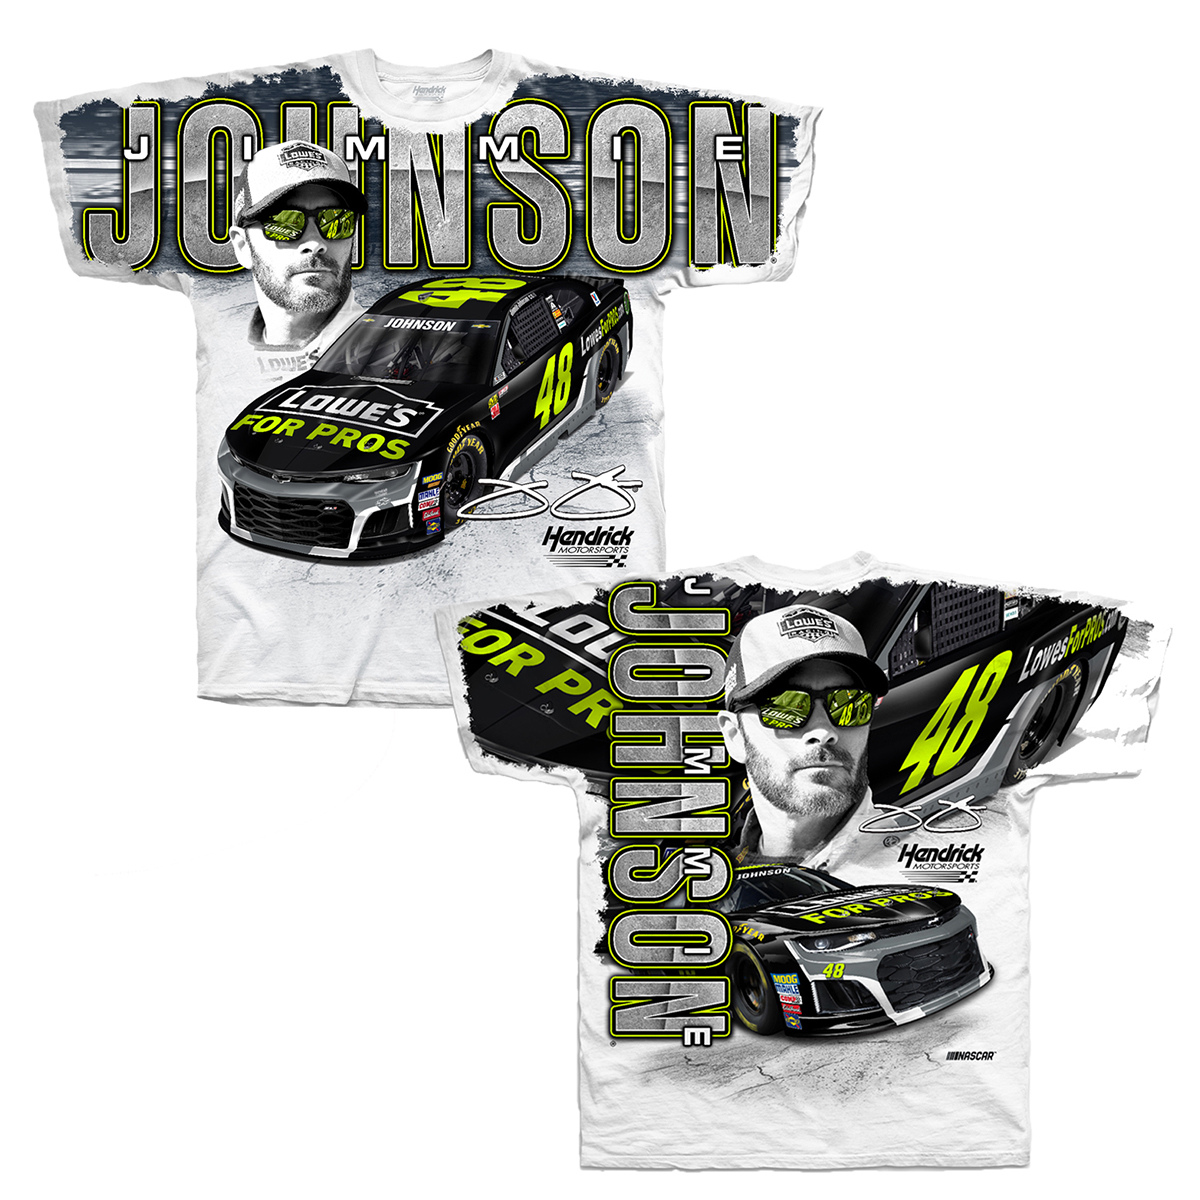 Jimmie Johnson #48 2018 Lowe's Total Print T-shirt